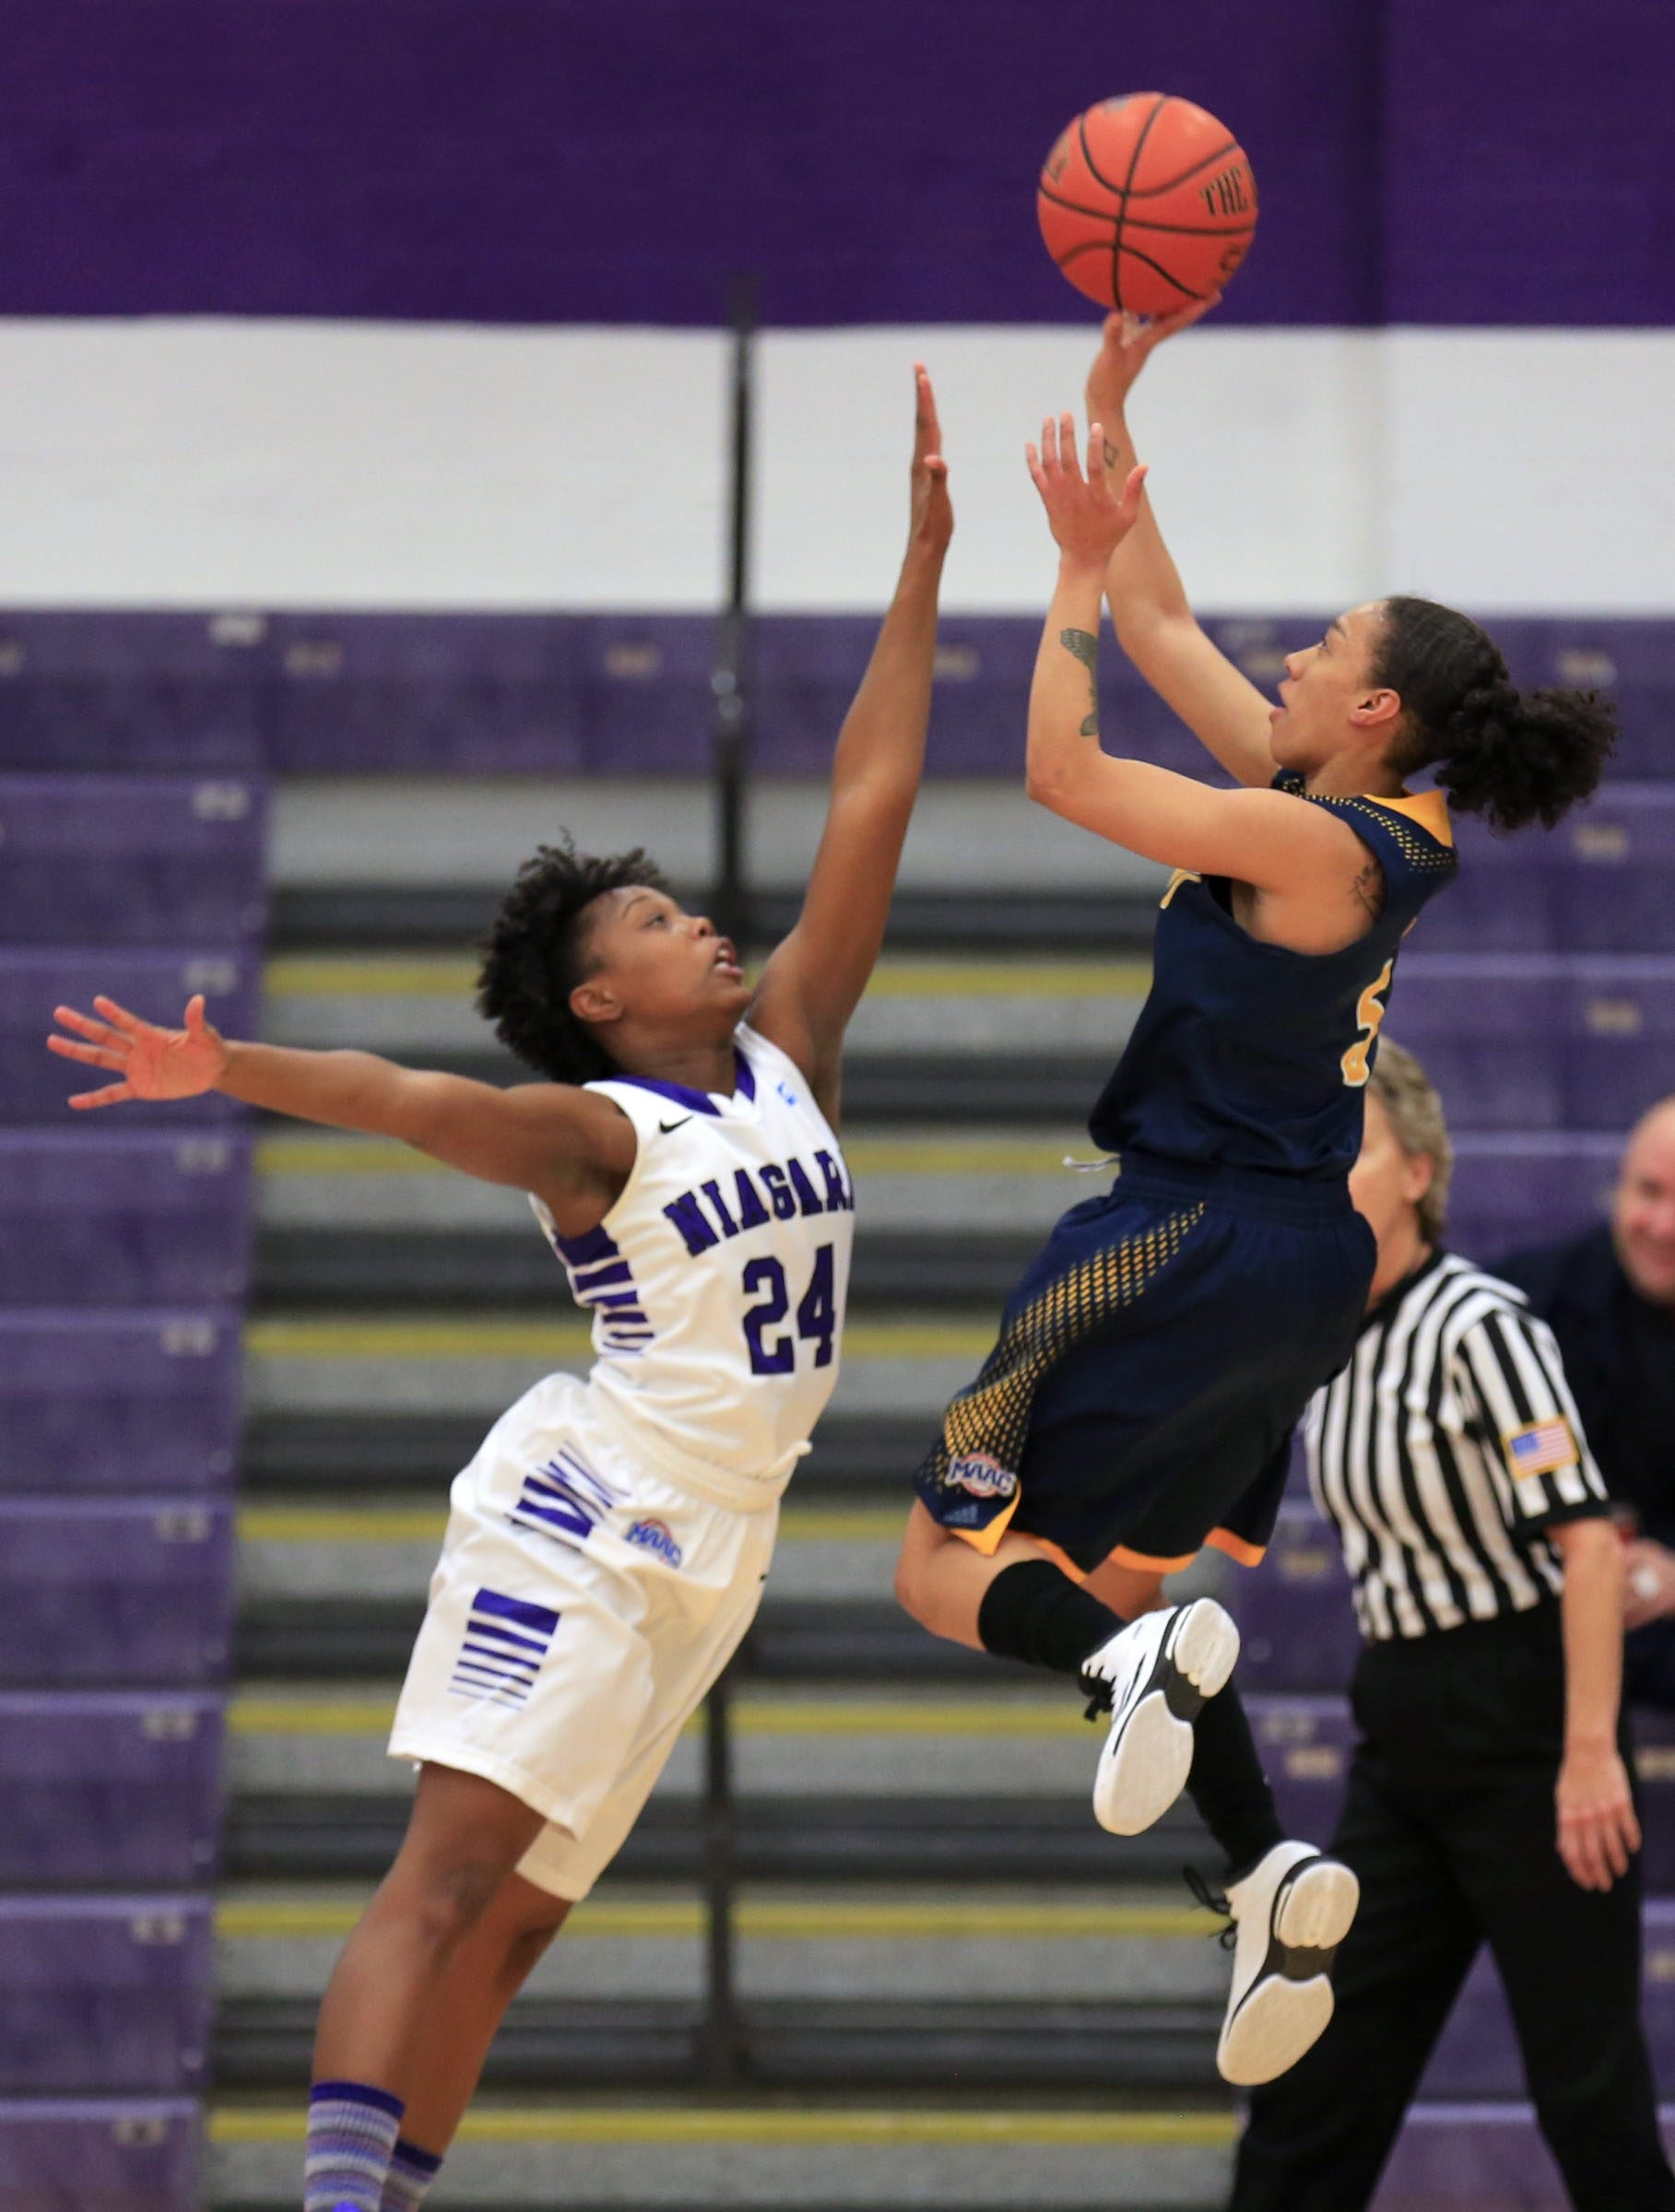 Tiahana Mills floats a one-hander for two points over Niagara's Joy Adams during the first half.